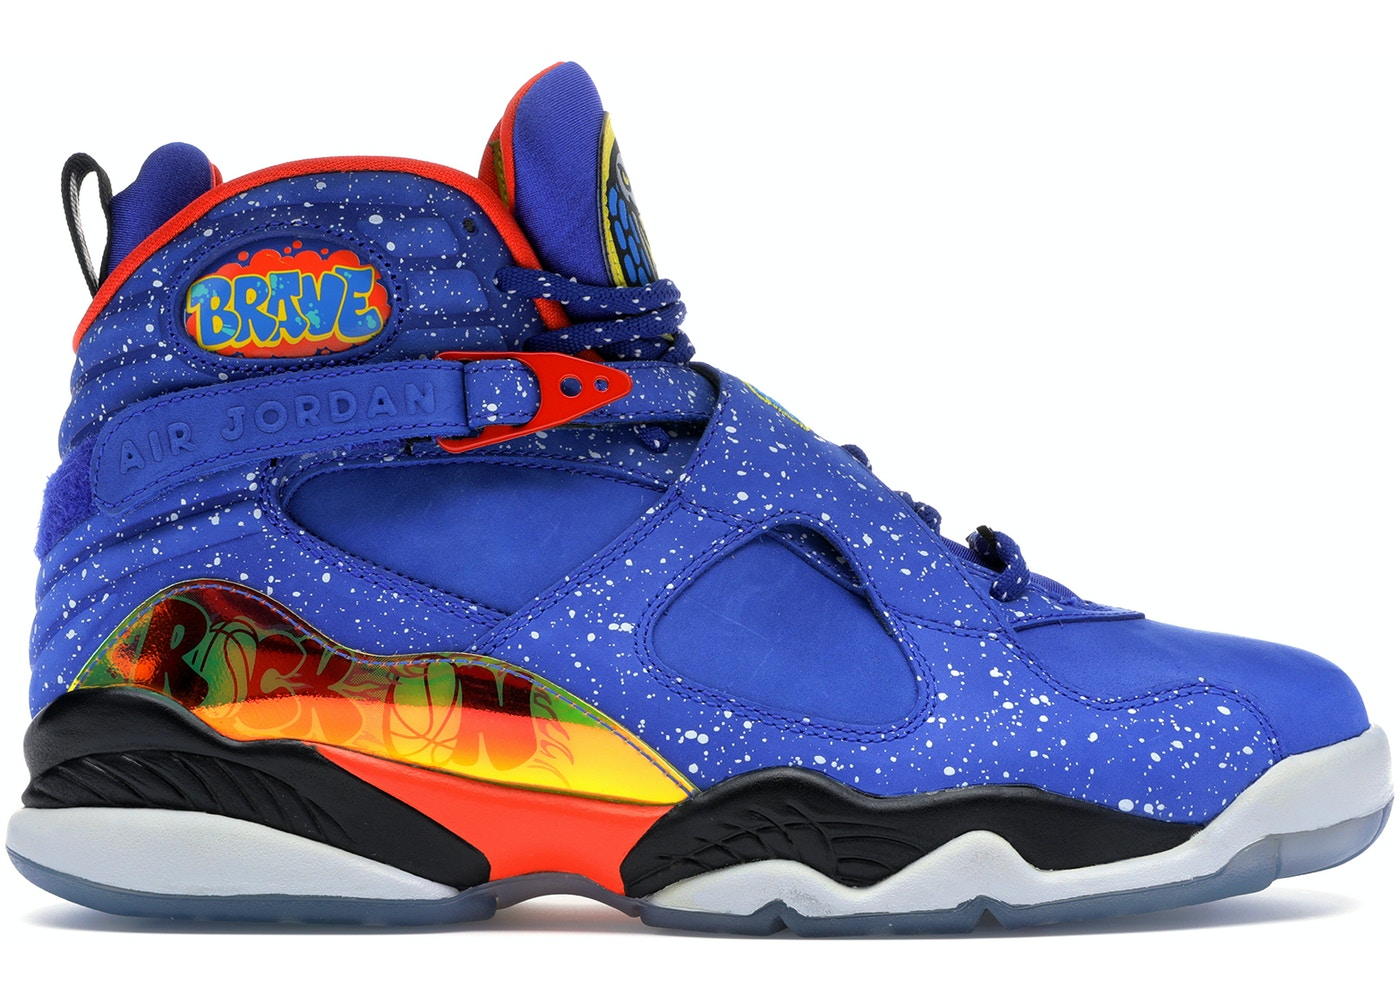 2b4b912bac83 Buy Air Jordan 8 Shoes   Deadstock Sneakers